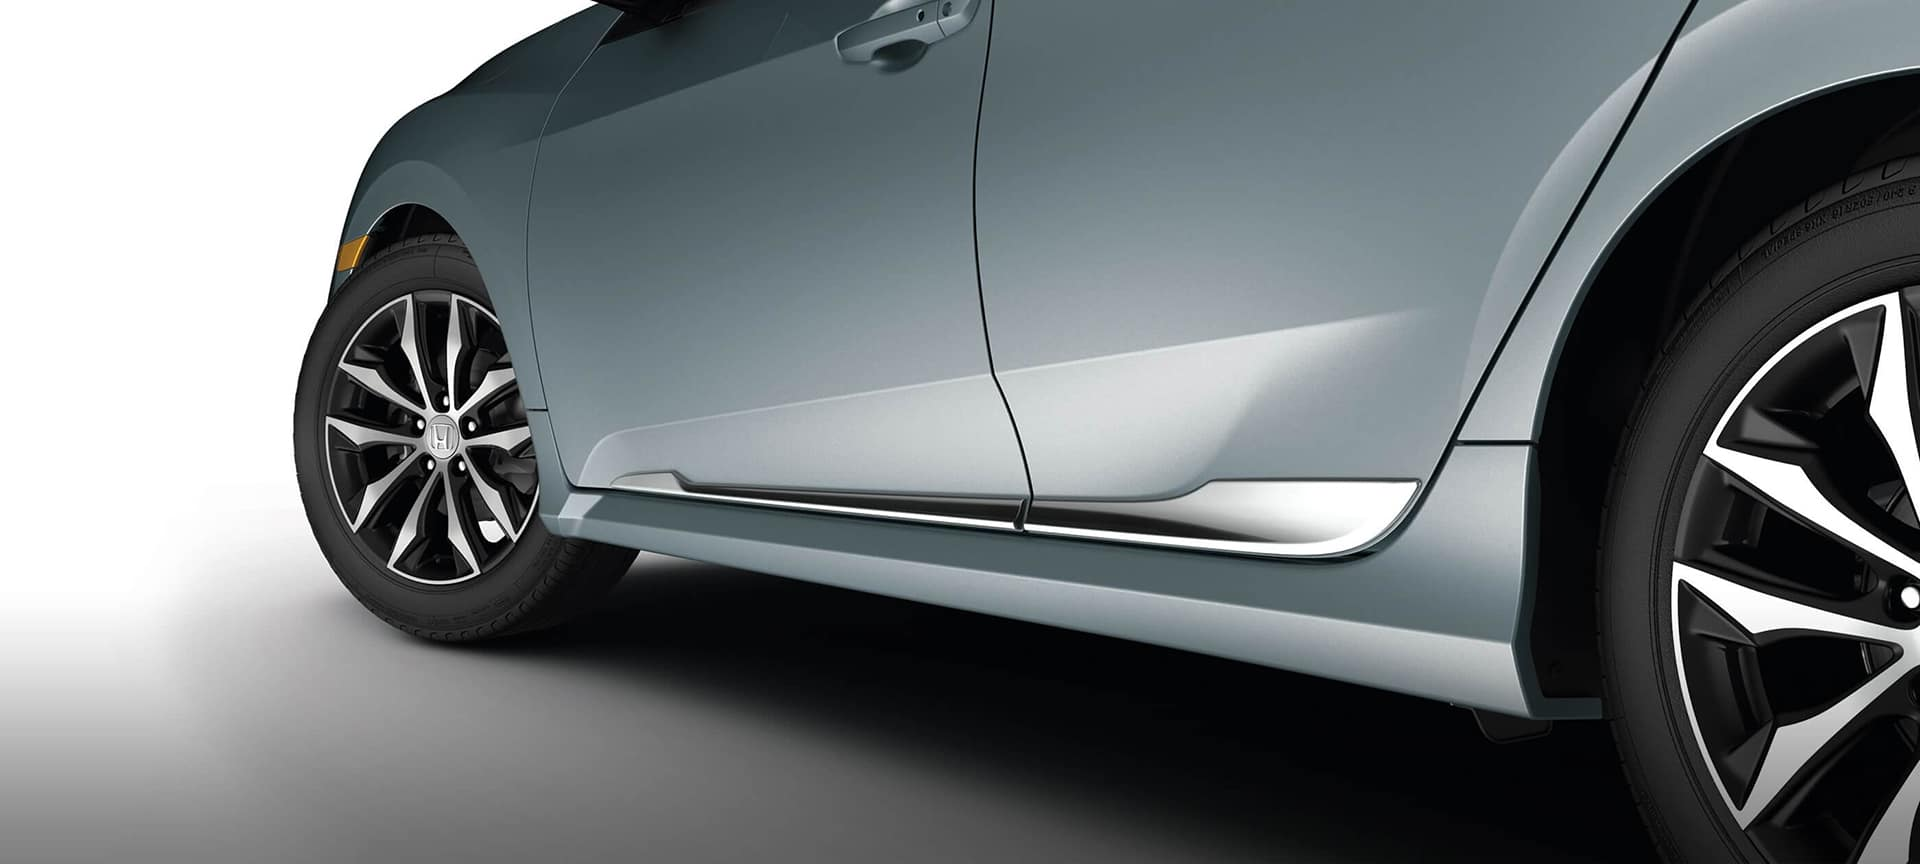 2019 Honda Civic Hatchback Exterior Door Trim